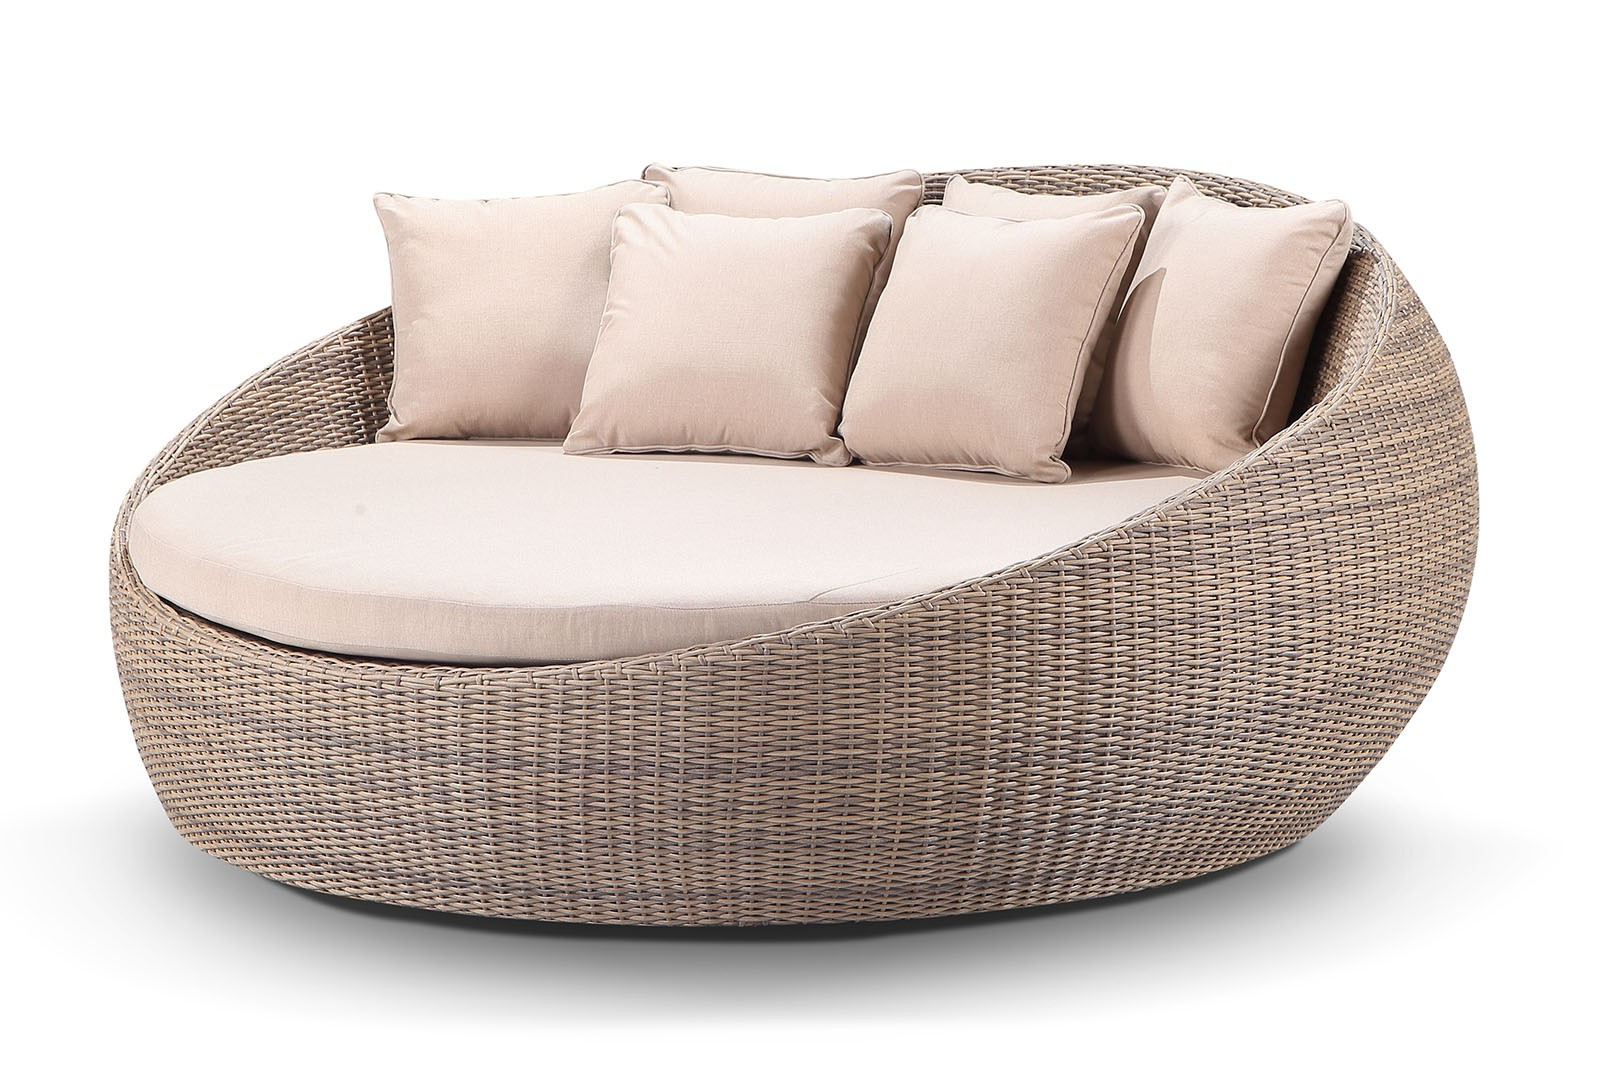 Large Newport Round Outdoor Wicker Daybed Without Canopy Inside 2020 Resort Patio Daybeds (View 5 of 20)